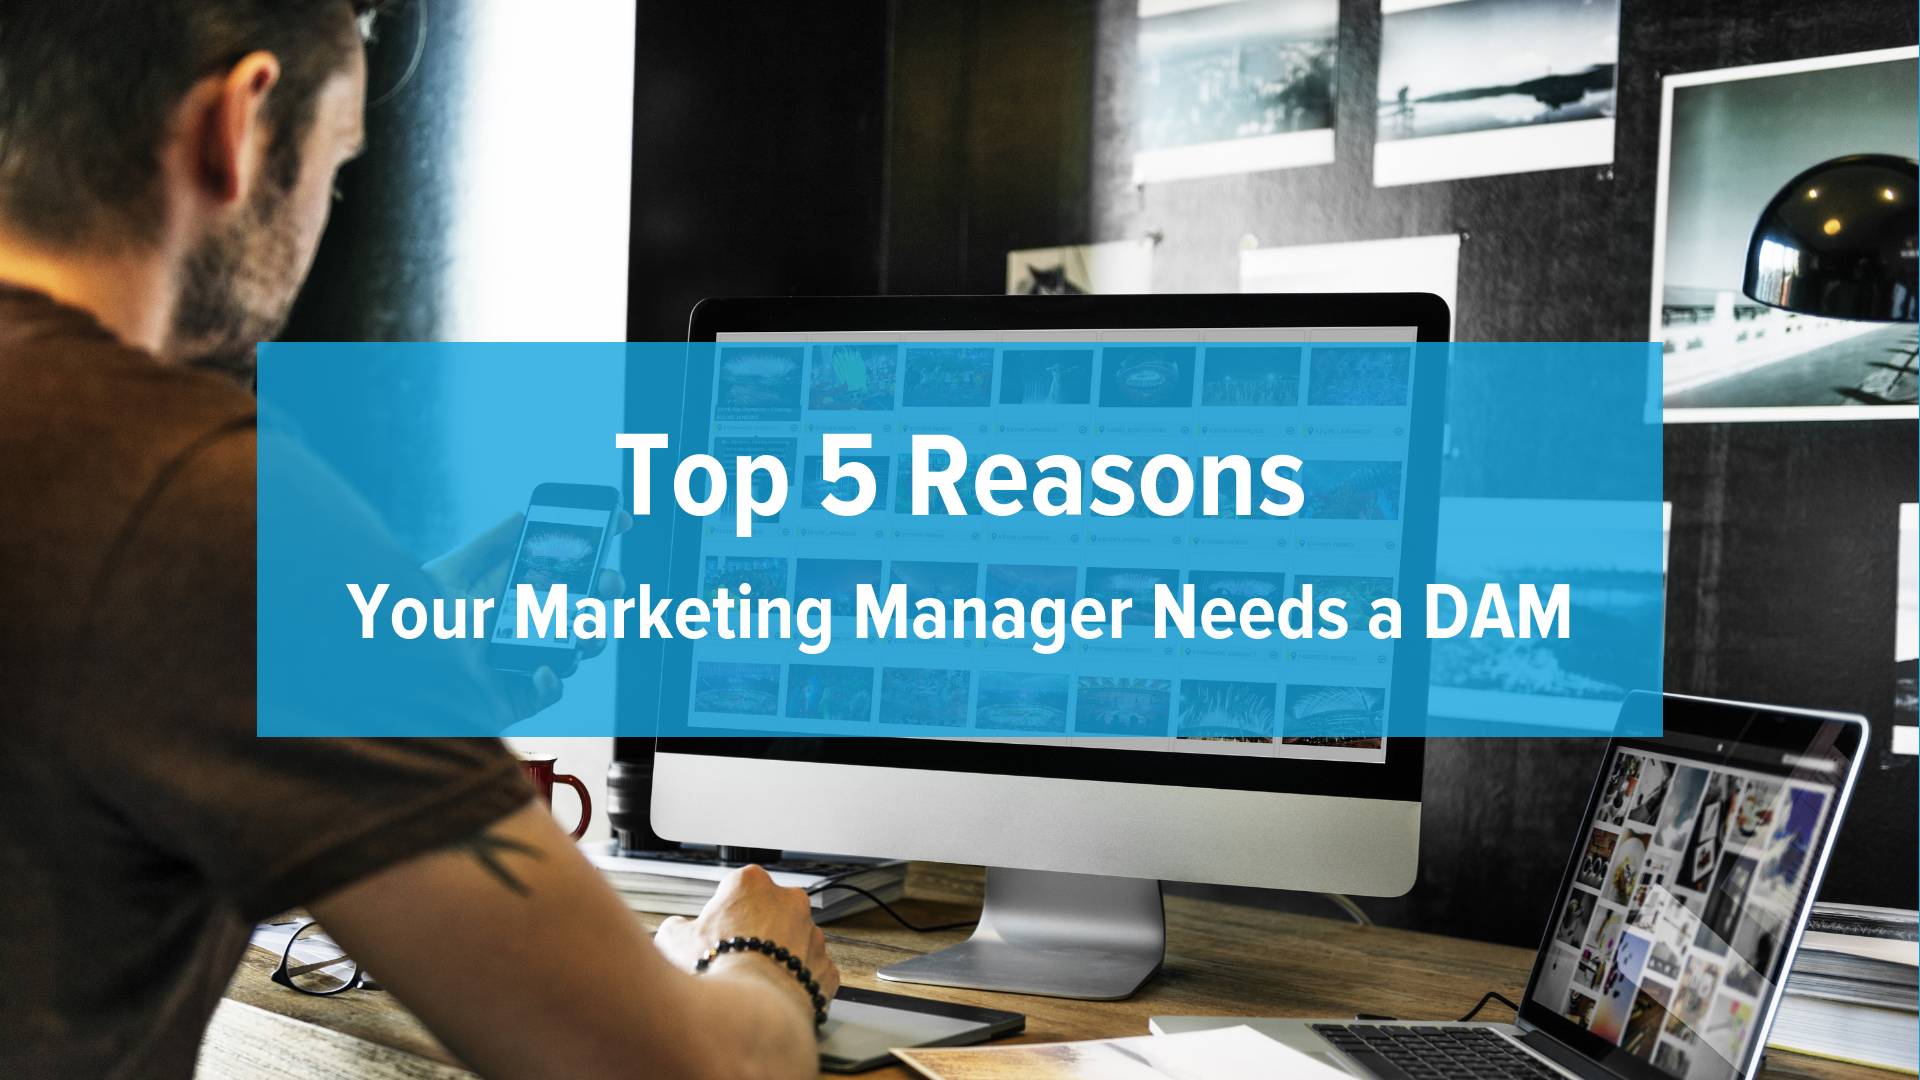 Top 5 Reasons Your Marketing Manager Needs a DAM